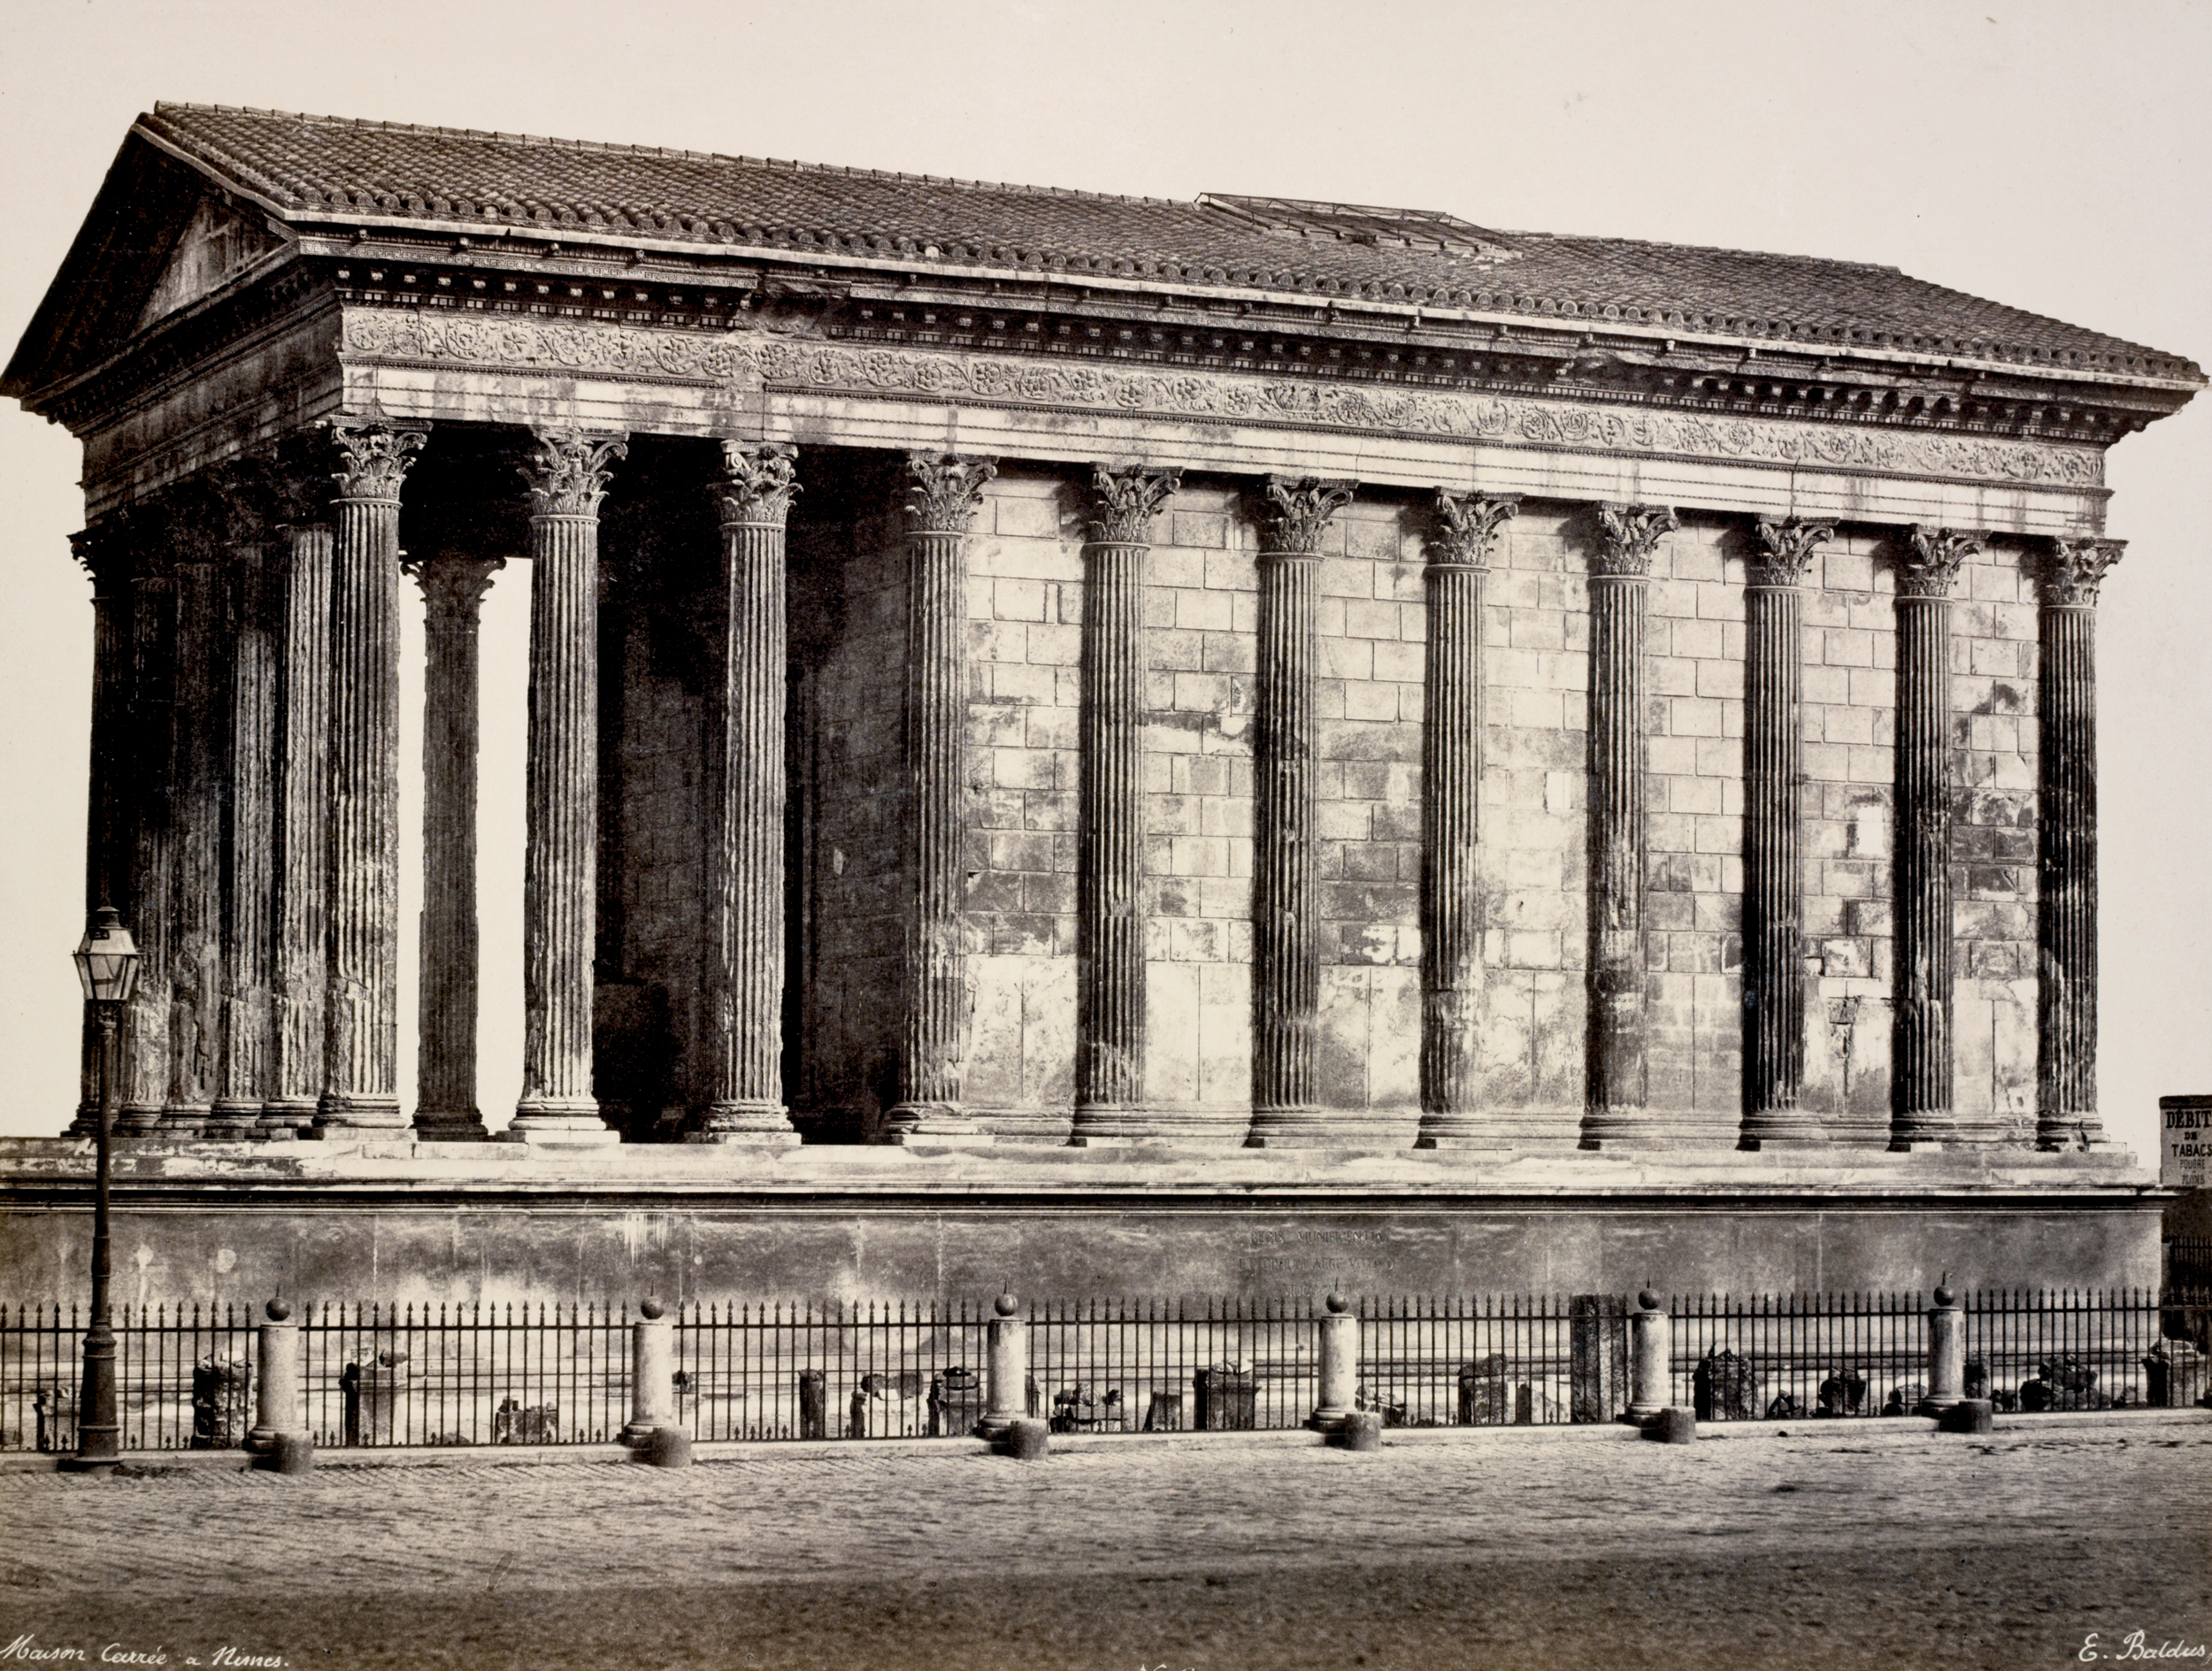 Maison Carreé à Nimes by Edouard Baldus (1813-1889), public domain via  New York Public Library Digital Collections .